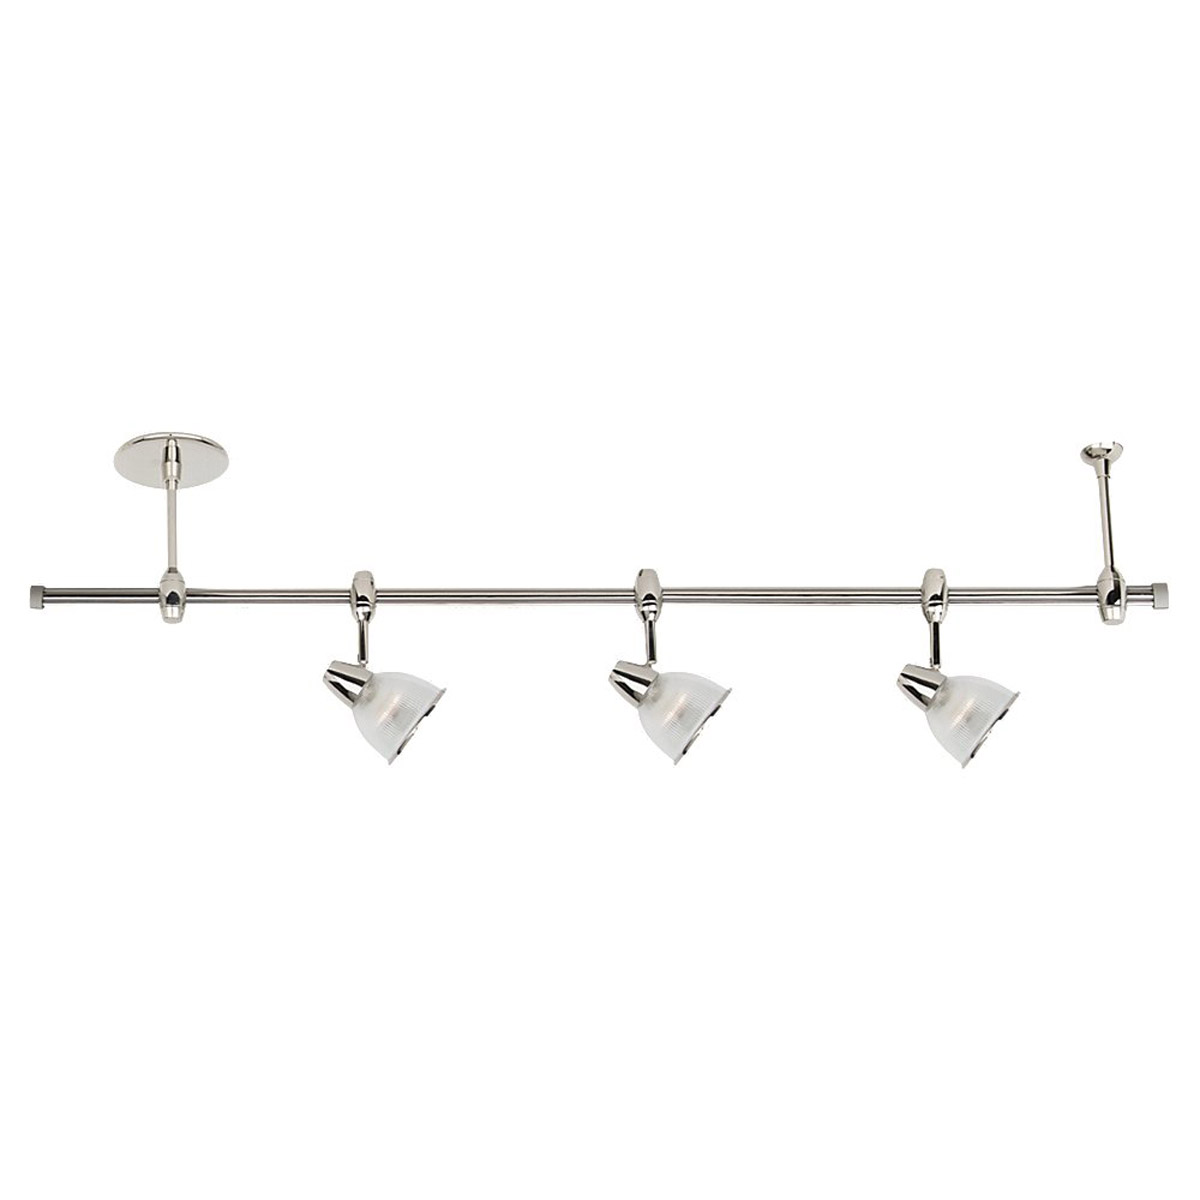 Sea Gull Lighting Ambiance Transitions 3 Light Rail Kit in Polished Nickel 94477-841